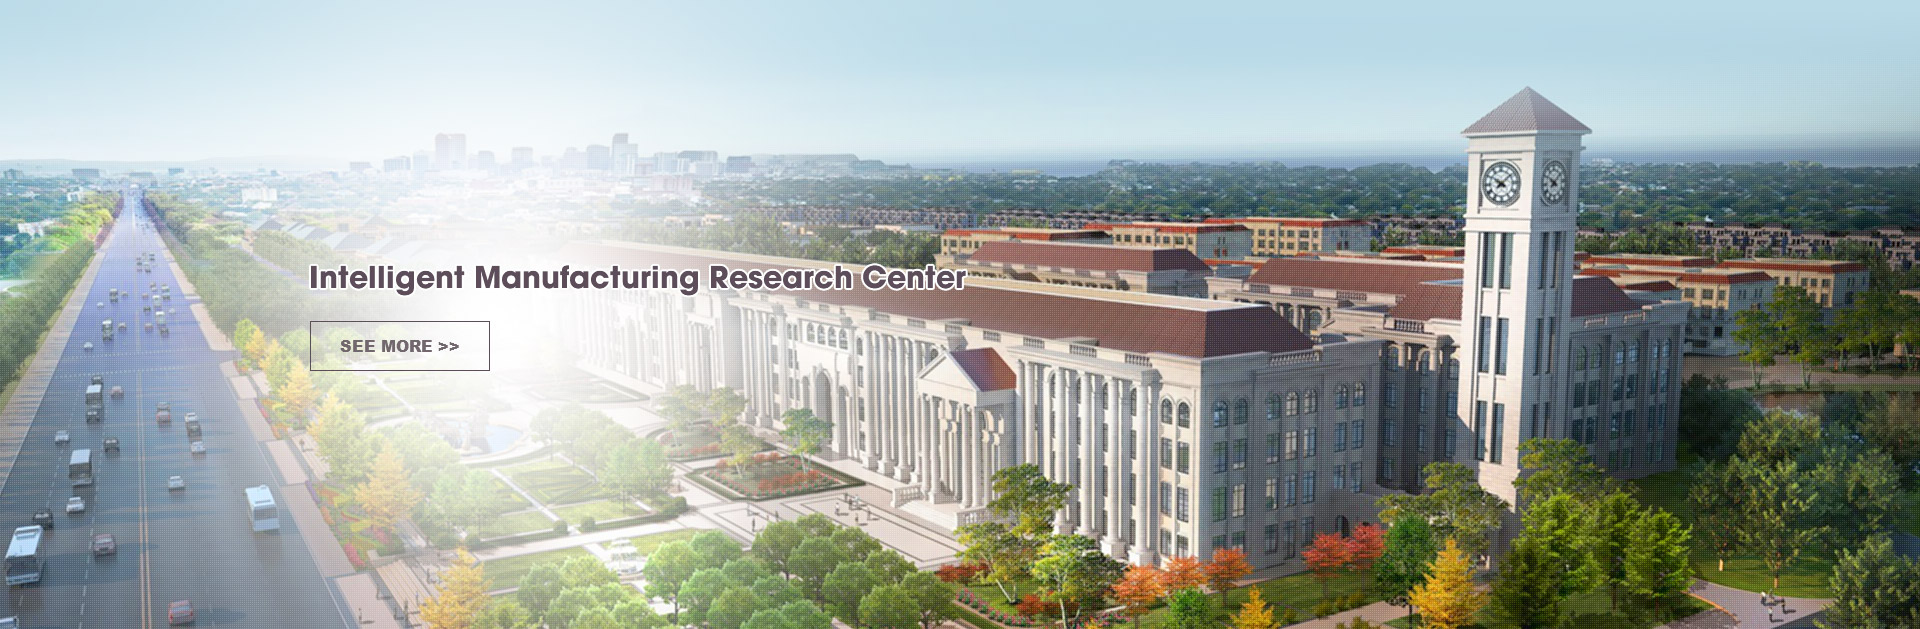 Intelligent Manufacturing Research Center